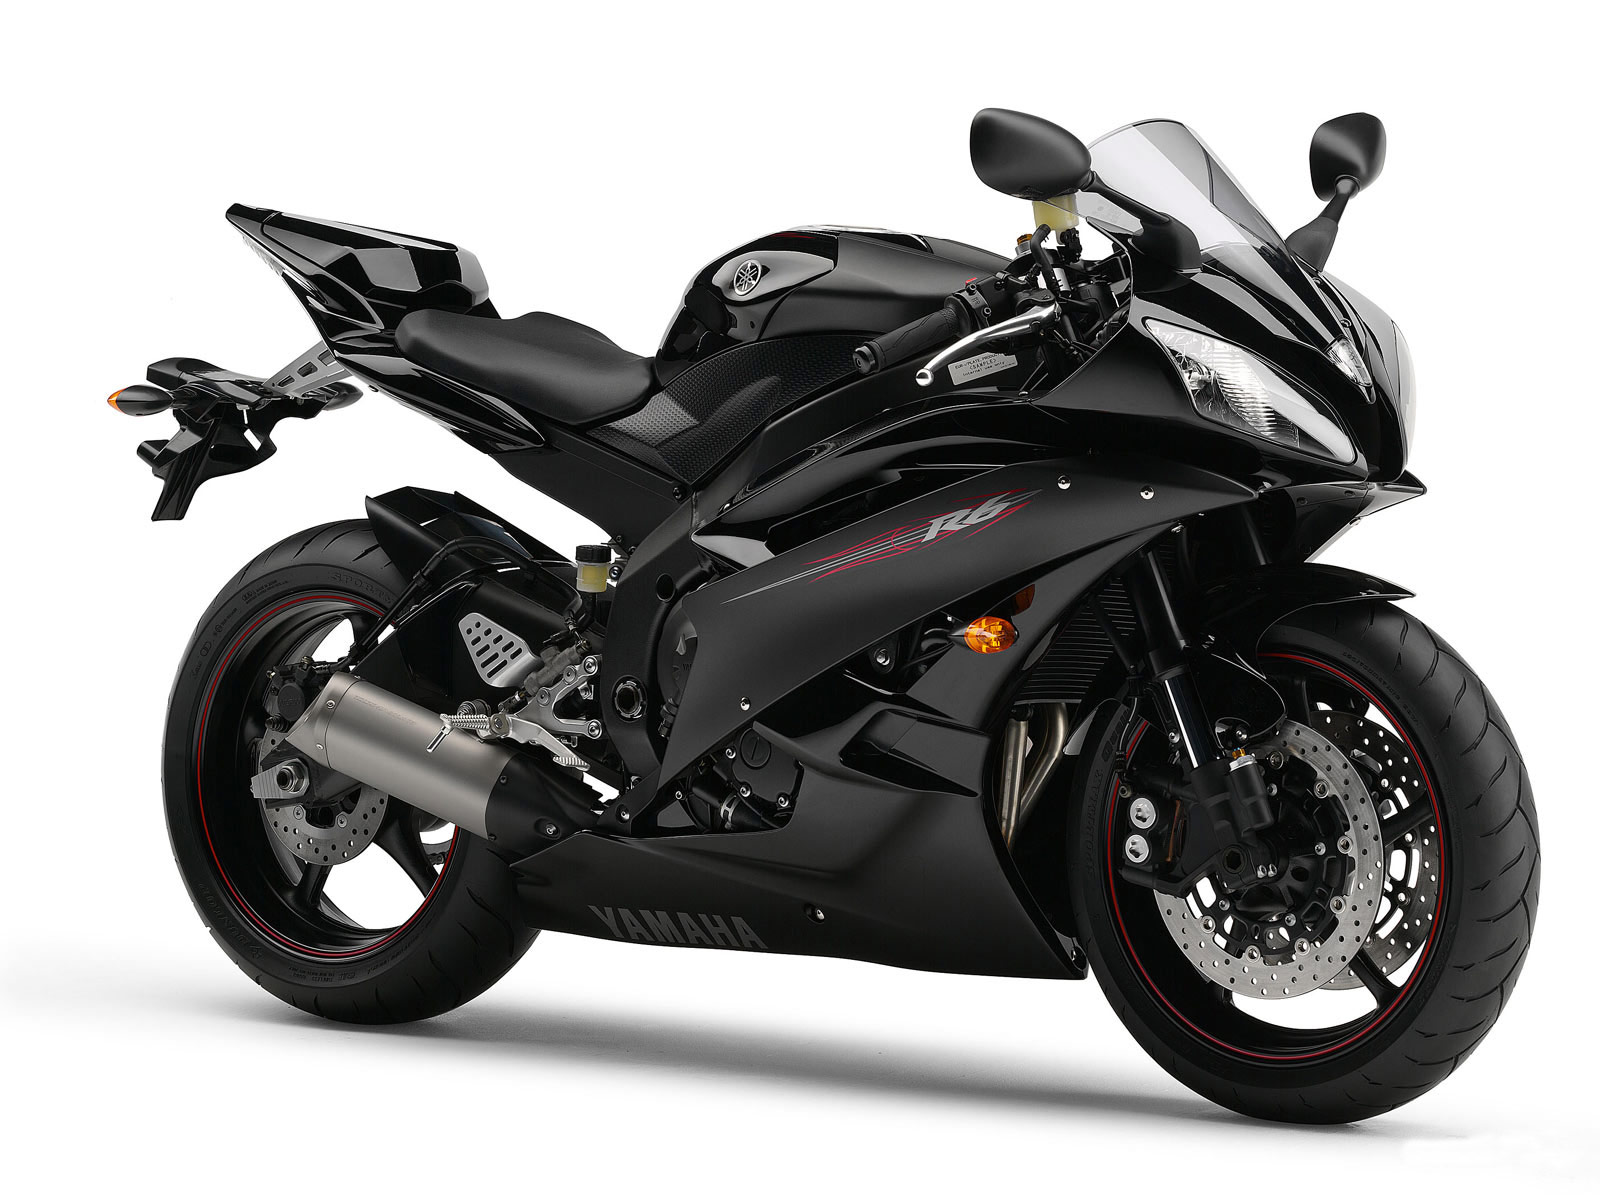 2006 YAMAHA YZF-R6 Motorcycle Pictures And Specifications